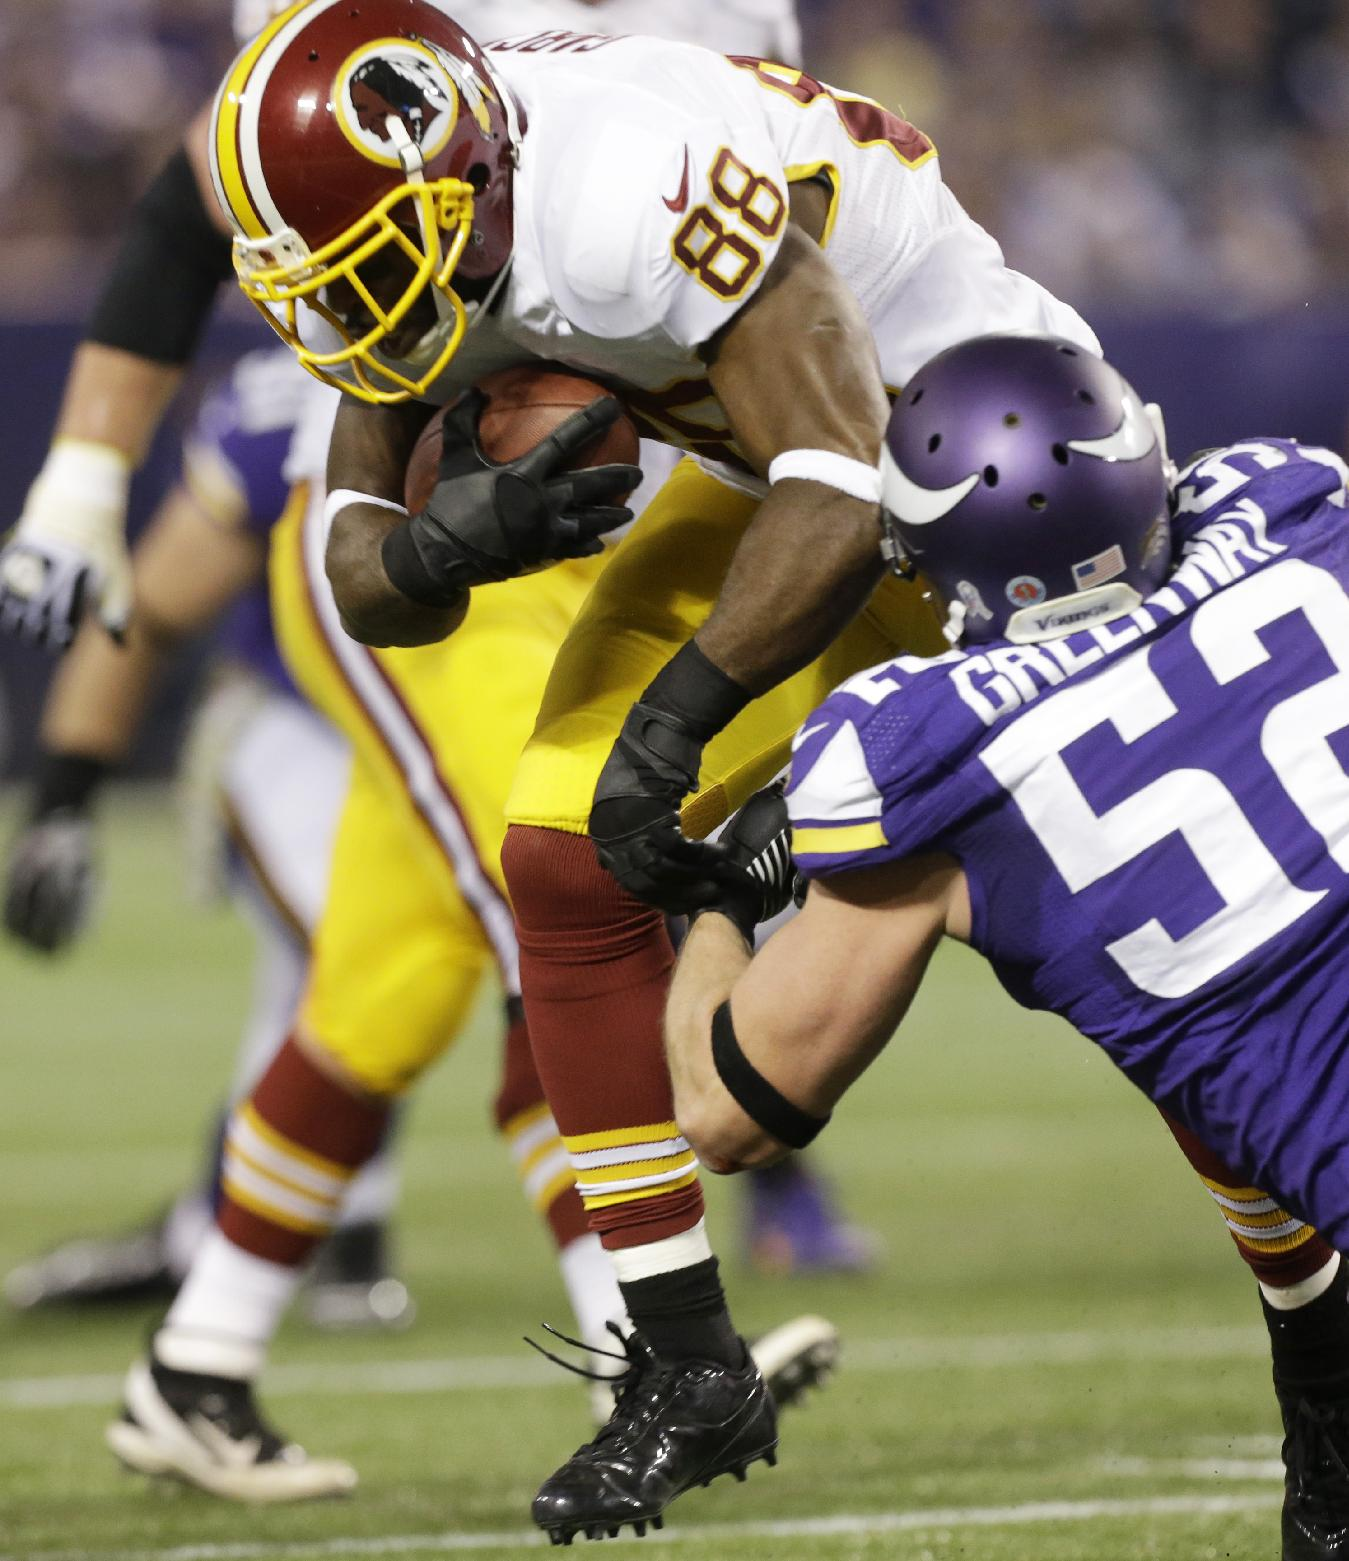 Washington Redskins wide receiver Pierre Garcon (88) tries to break a tackle by Minnesota Vikings outside linebacker Chad Greenway, right, after making a reception during the first half of an NFL football game Thursday, Nov. 7, 2013, in Minneapolis